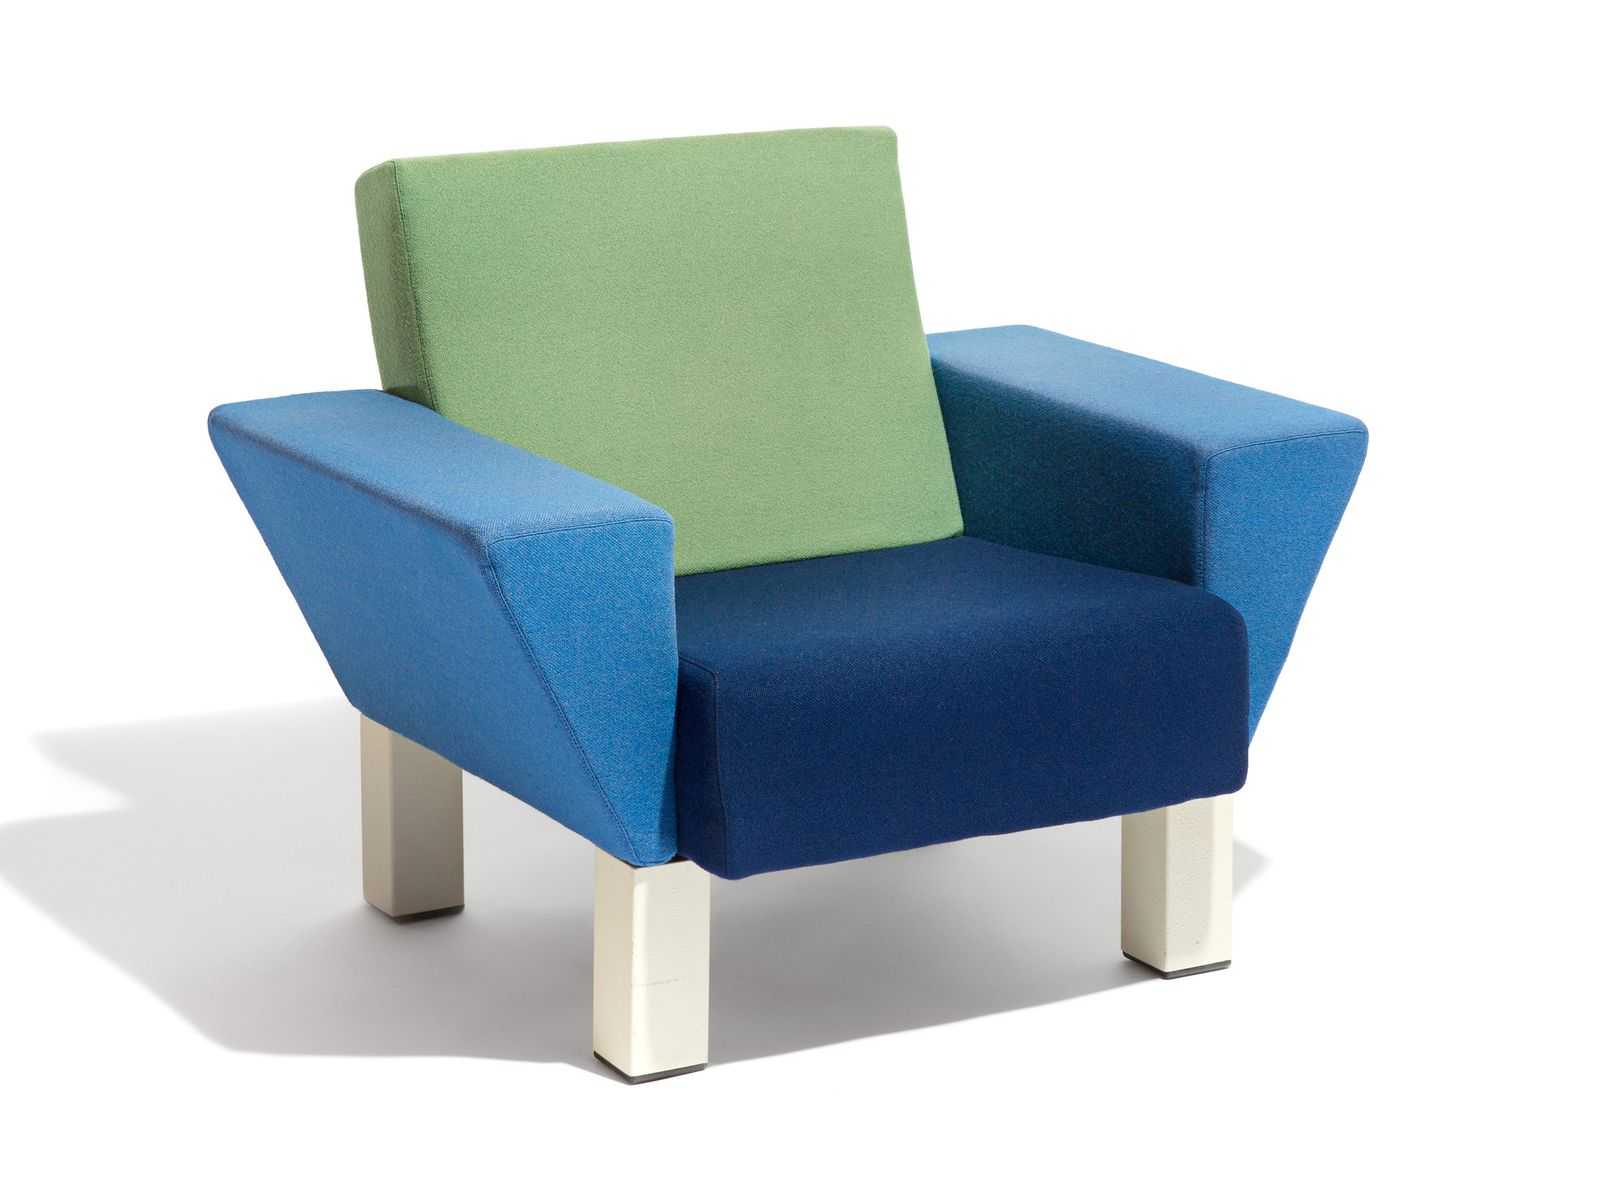 Westside lounge chairs by ettore sottsass for knoll 1980s for 1980s chair